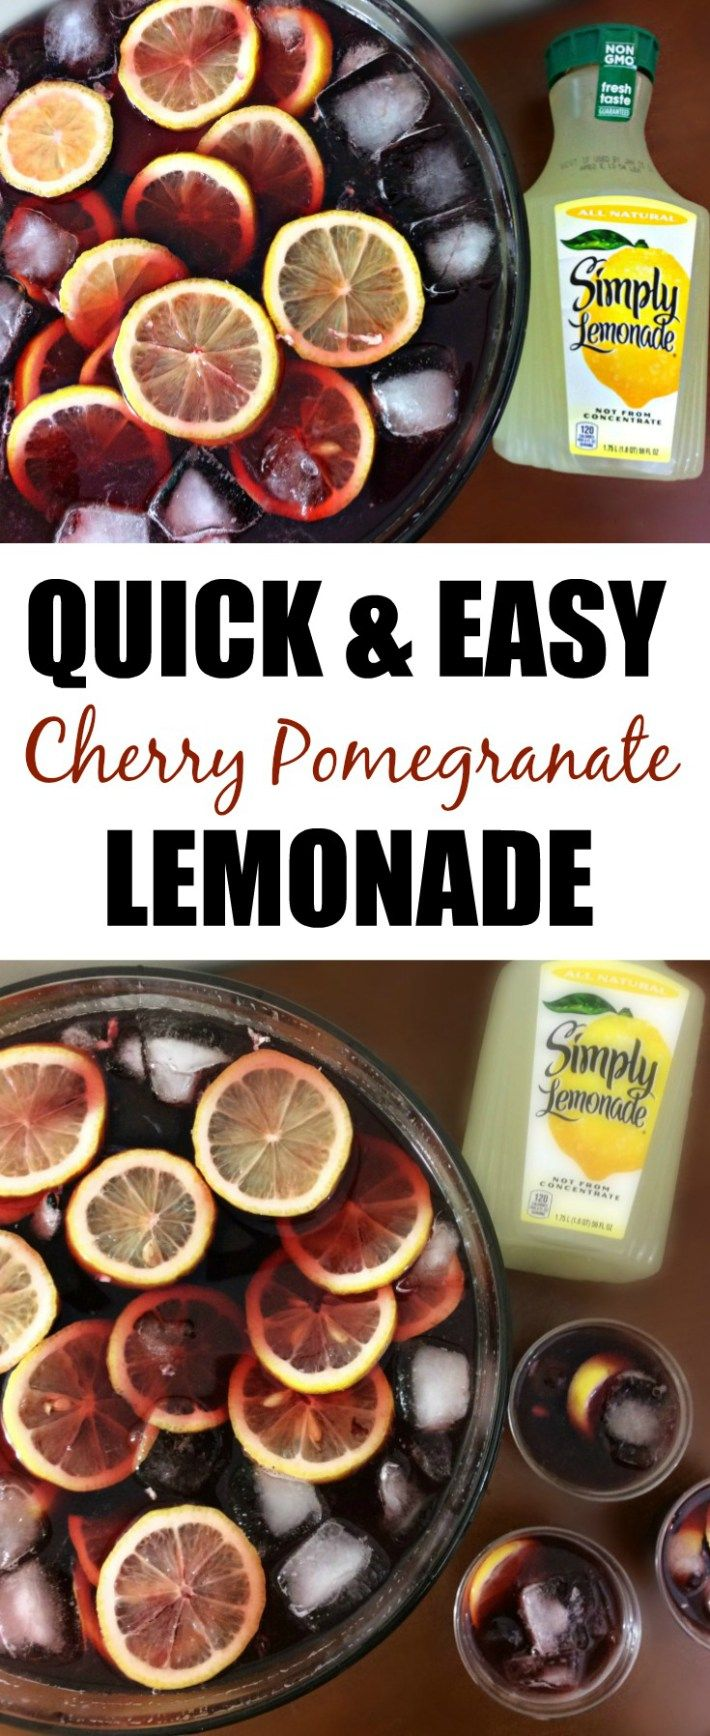 Quick & Easy Cherry Pomegranate Lemonade   Food and drink ...